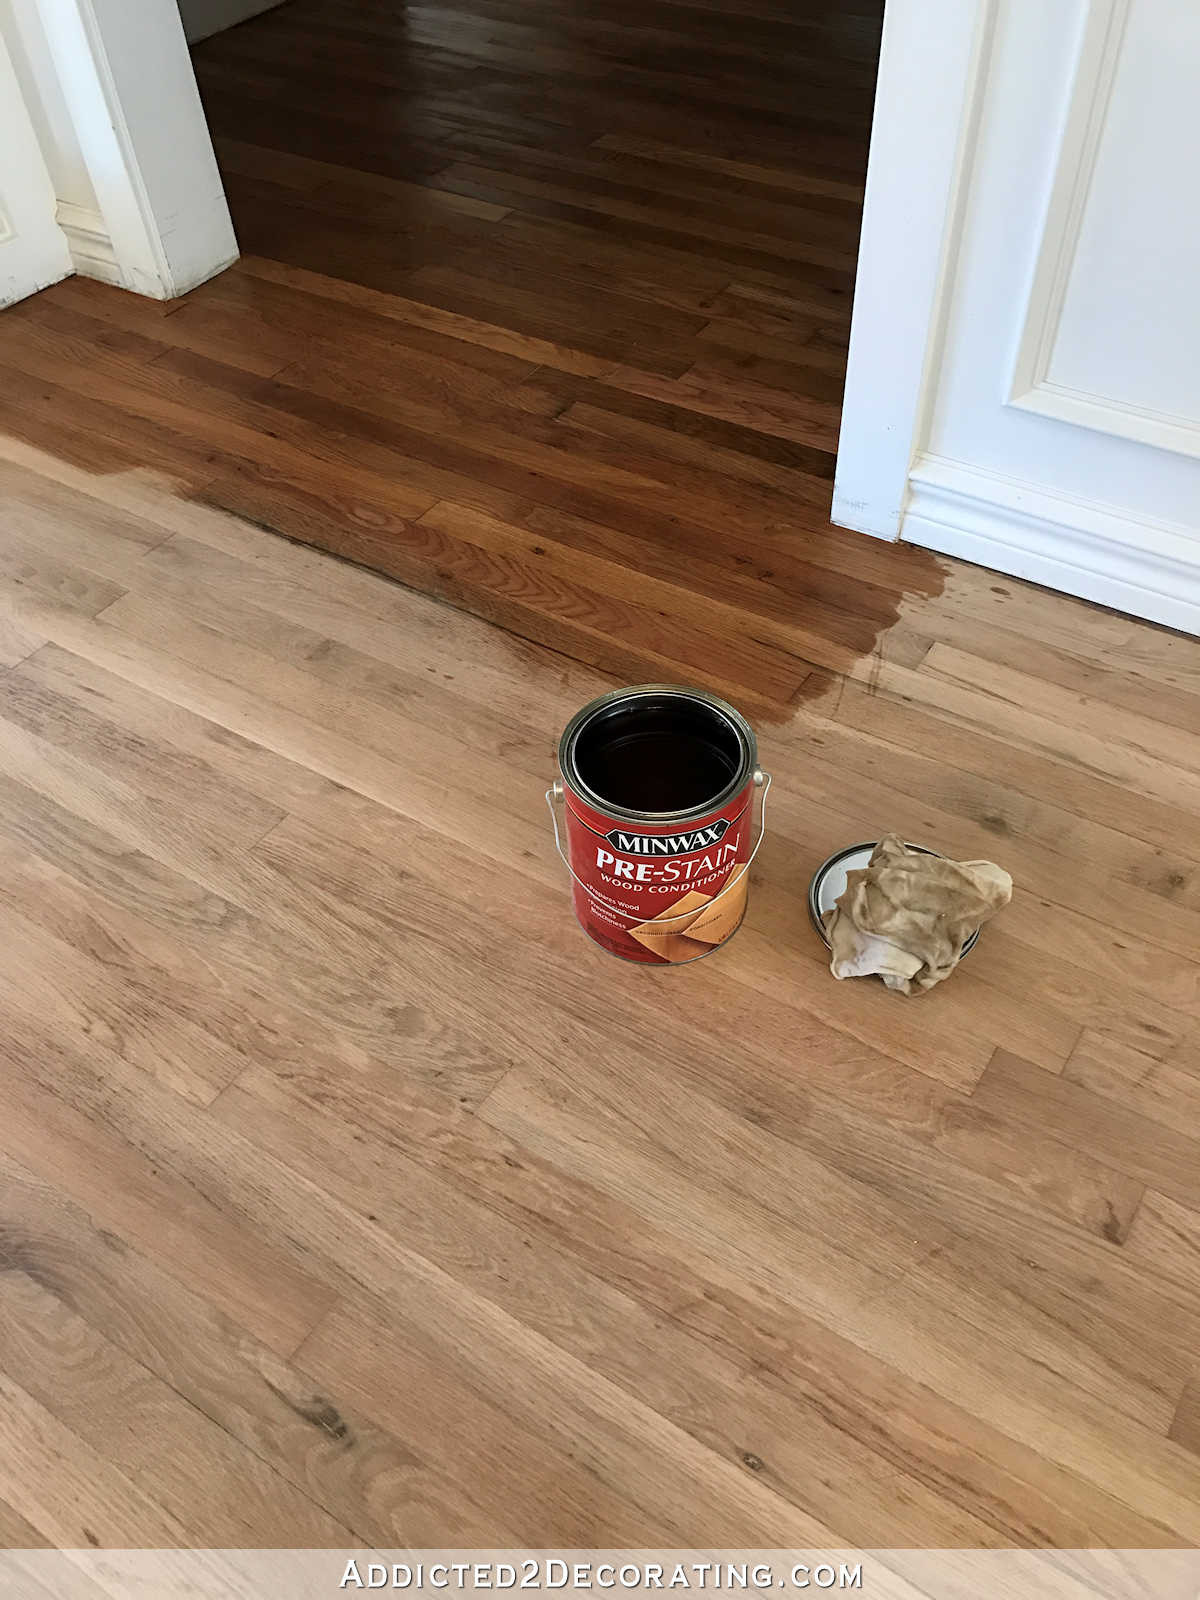 light grey hardwood floors of adventures in staining my red oak hardwood floors products process within staining red oak hardwood floors 1 conditioning the wood with minwax pre stain